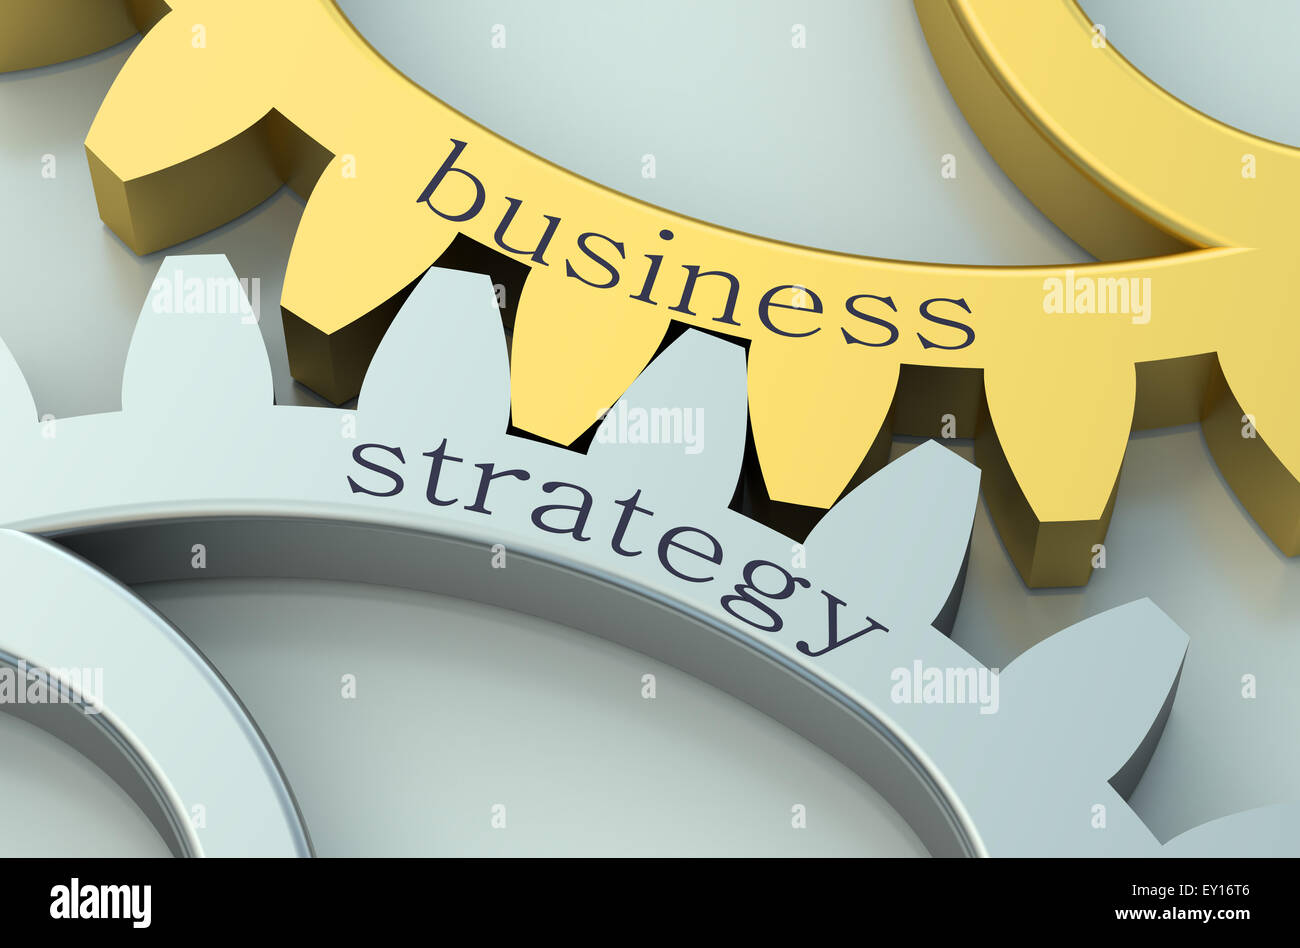 Business and Strategy concept on metallic gearwheel - Stock Image